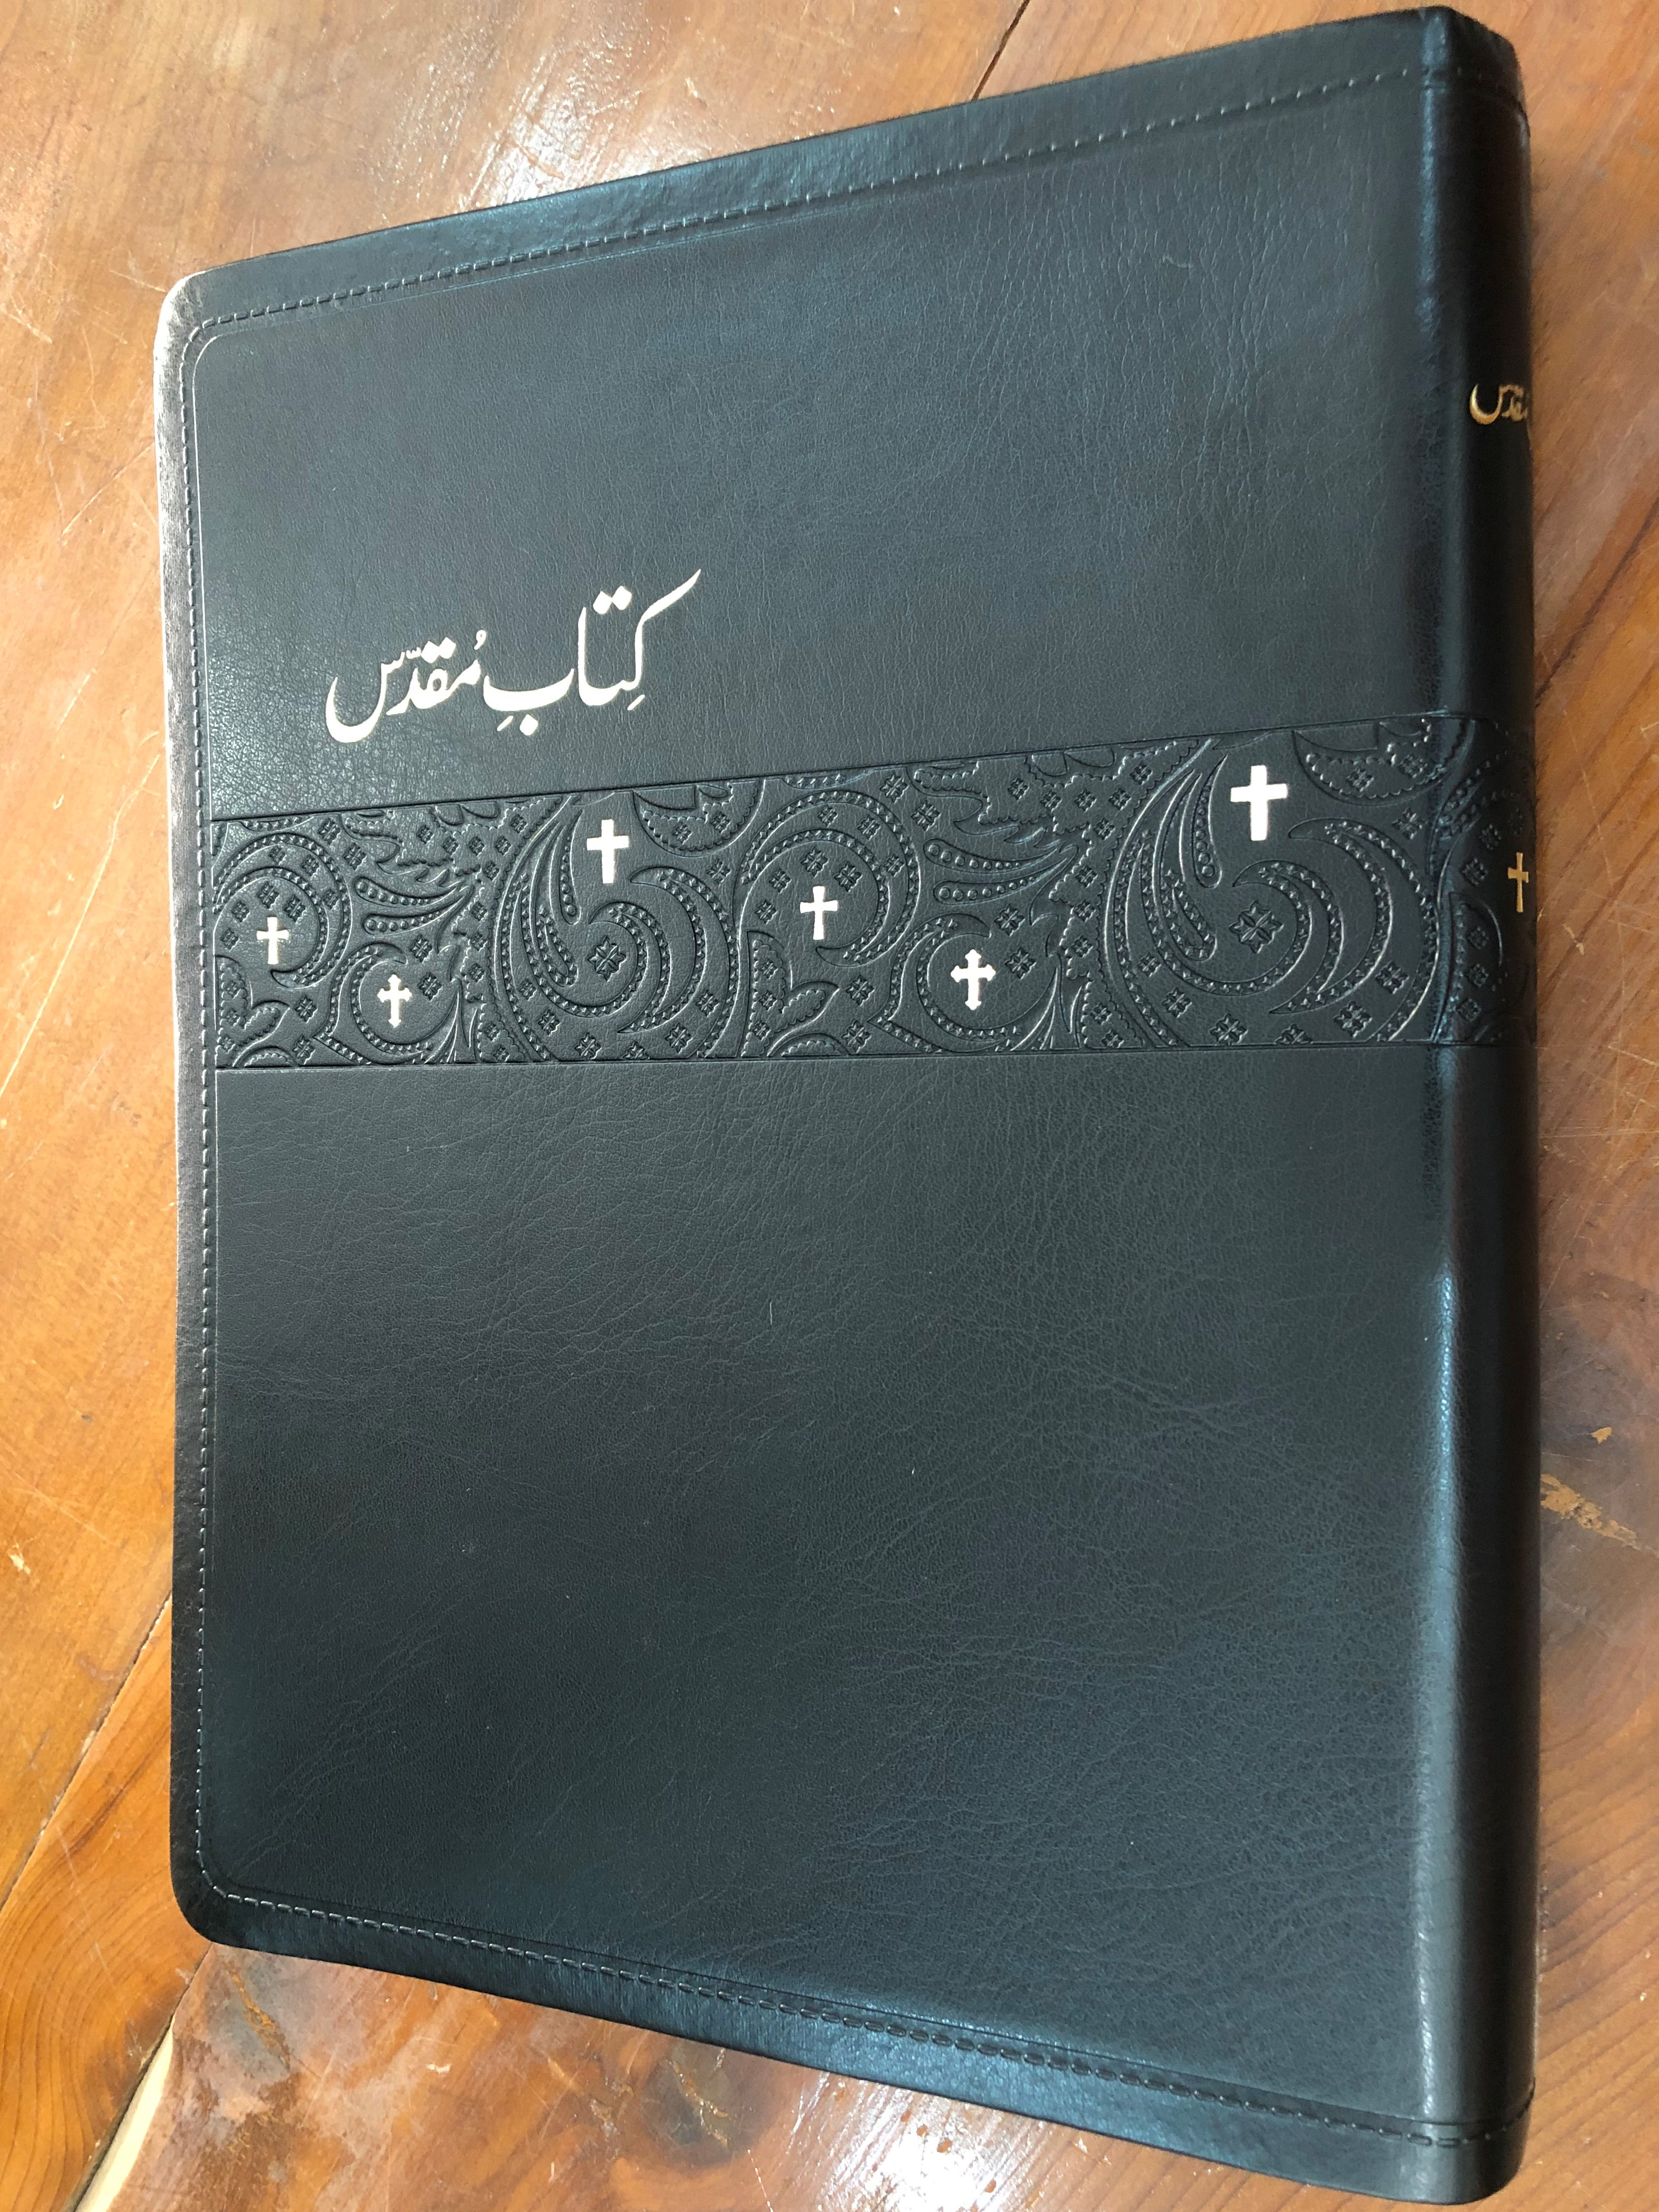 urdu-holy-bible-with-cross-references-beautiful-black-leather-bound-golden-edges-color-maps-revised-version-2011-pakistan-bible-society-2019-1-.jpg